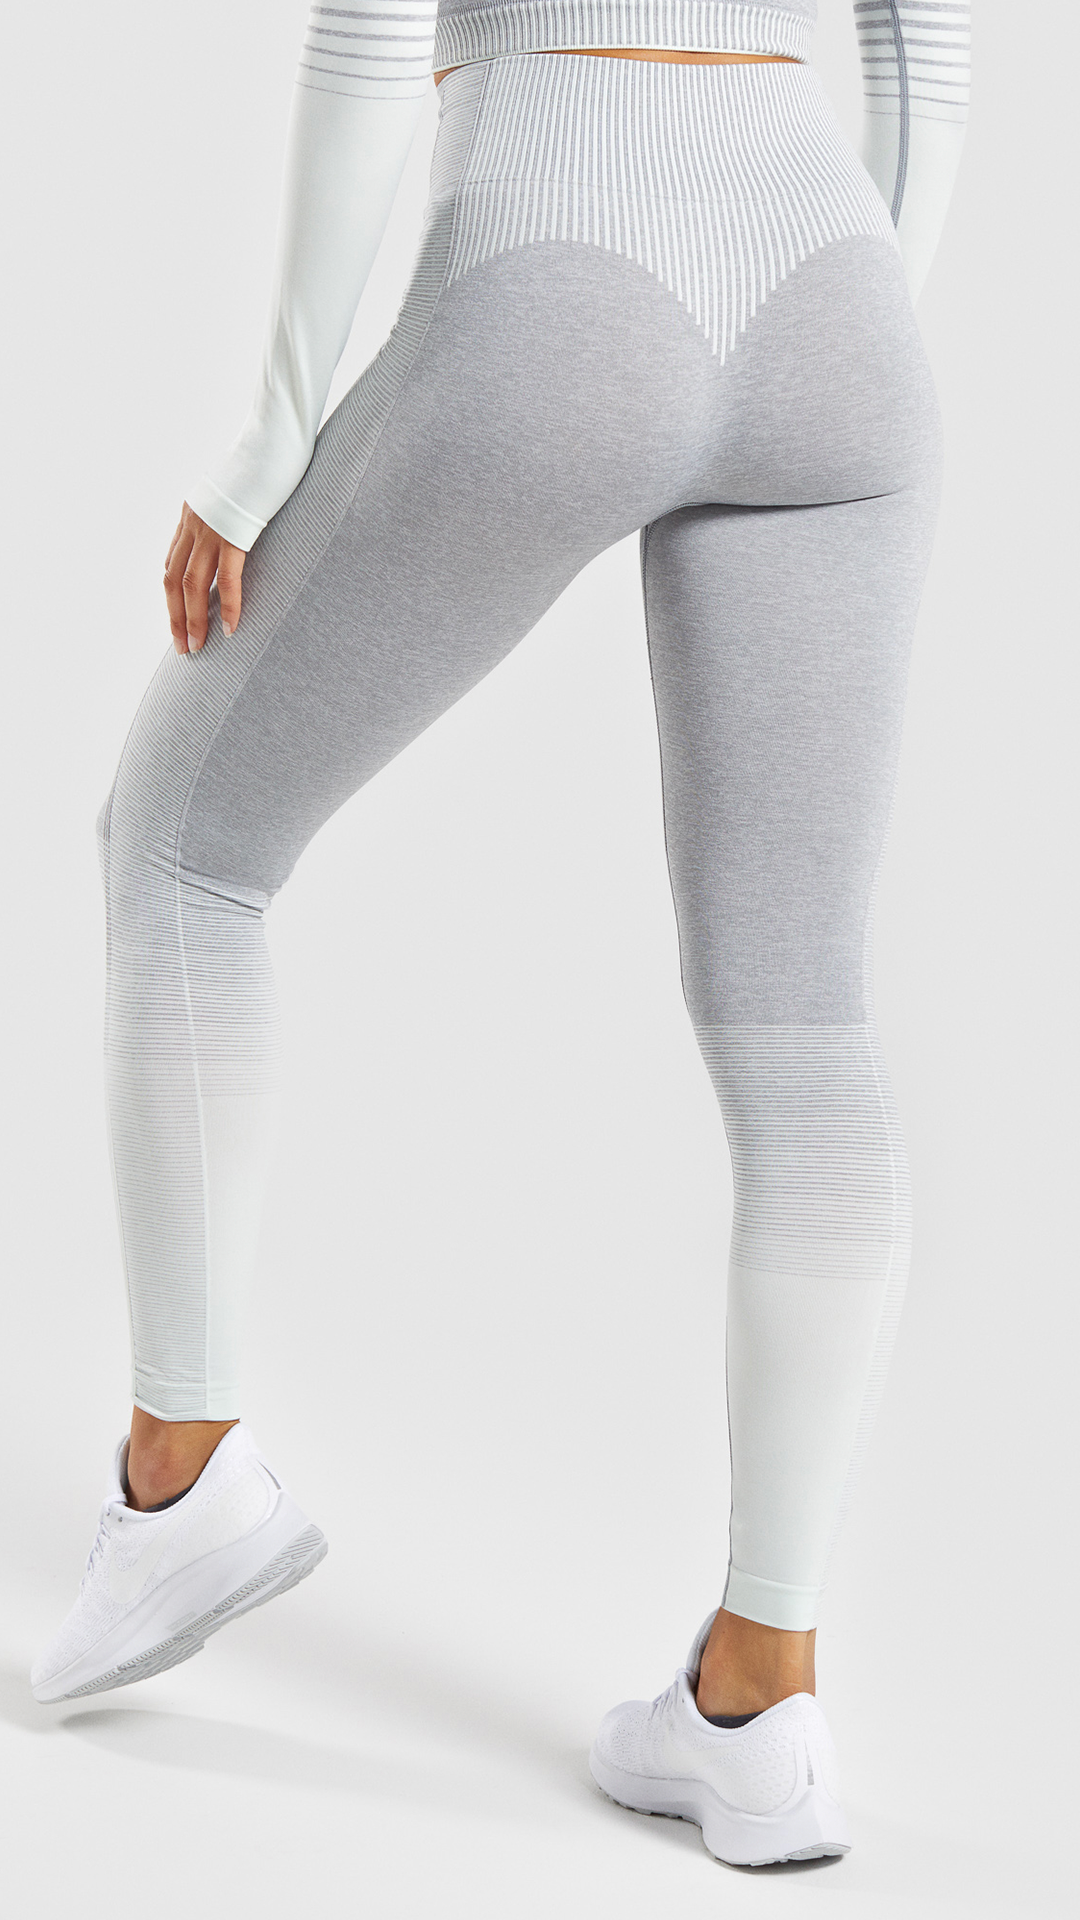 f75cdf7778017 The Amplify Seamless Leggings. A take on our classic seamless ranges,  featuring a dip-dye colour blend and figure-enhancing contours.